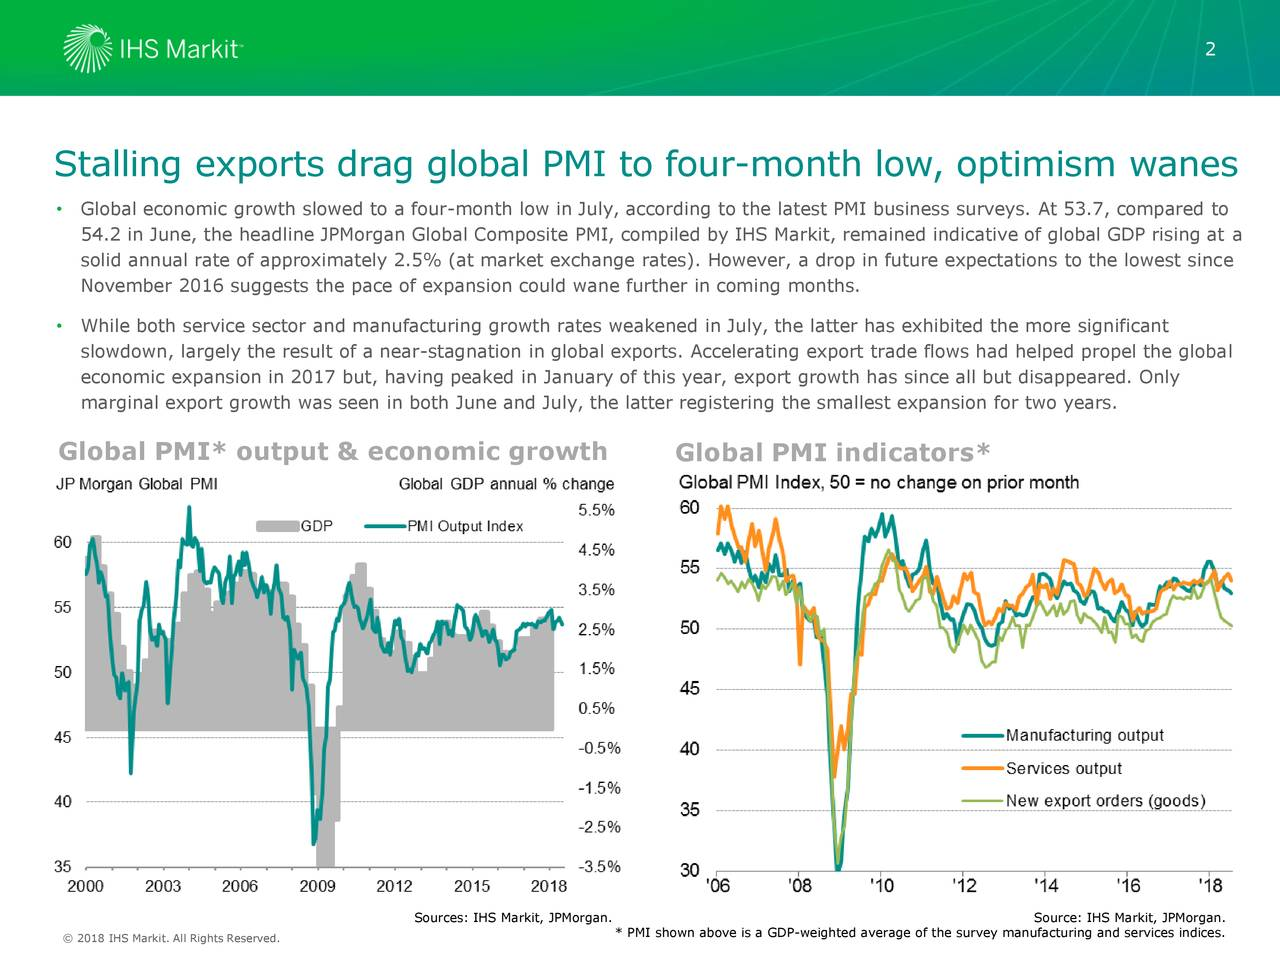 Stalling exports drag global PMI to four-month low, optimism wanes • Global economic growth slowed to a four-month low in July, according to the latest PMI business surveys. At 53.7, compared to 54.2 in June, the headline JPMorgan Global Composite PMI, compiled by IHS Markit, remained indicative of global GDP rising at a solid annual rate of approximately 2.5% (at market exchange rates). However, a drop in future expectations to the lowest since November 2016 suggests the pace of expansion could wane further in coming months. • While both service sector and manufacturing growth rates weakened in July, the latter has exhibited the more significant slowdown, largely the result of a near-stagnation in global exports. Accelerating export trade flows had helped propel the global economic expansion in 2017 but, having peaked in January of this year, export growth has since all but disappeared. Only marginal export growth was seen in both June and July, the latter registering the smallest expansion for two years. Global PMI* output & economic growth Global PMI indicators* Sources: IHS Markit, JPMorgan. Source: IHS Markit, JPMorgan. © 2016 IHS Markit. All Rights Reserved. * PMI shown above is a GDP-weighted average of the survey manufacturing and services indices.